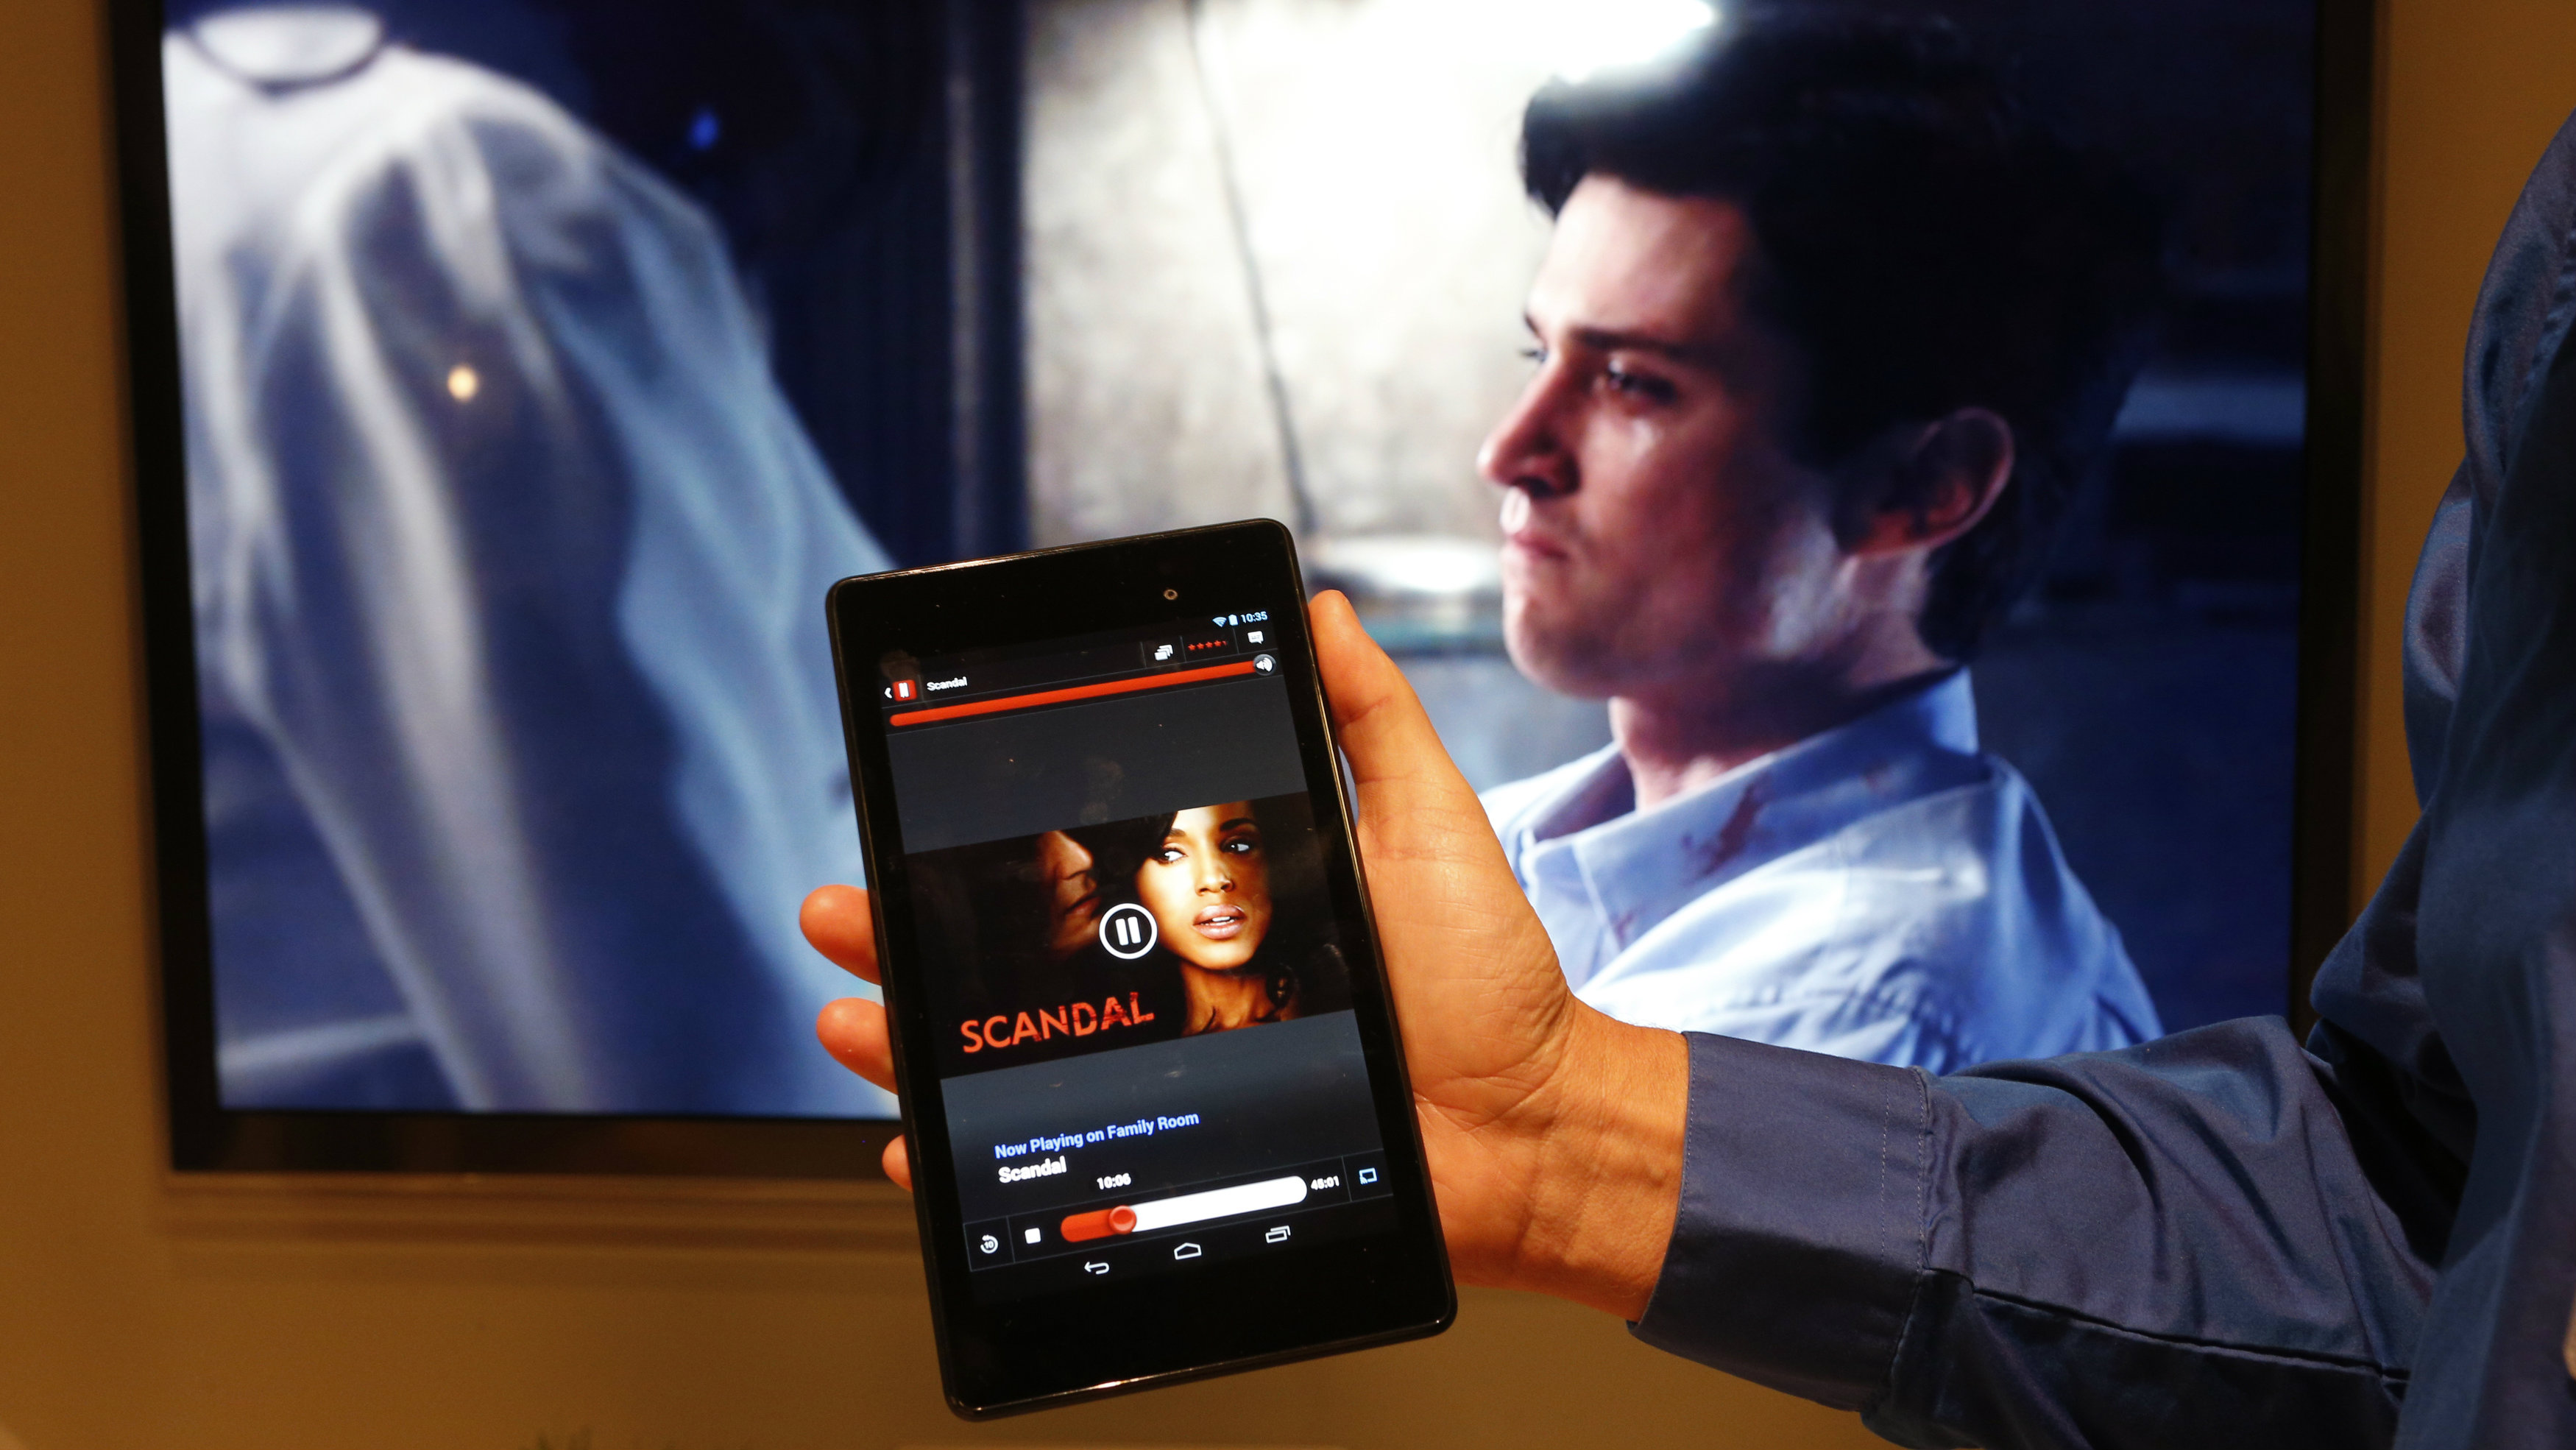 Michael Sundermeyer, of Google, demonstrates Google's new Chromecast device synching between a television and the new Nexus 7 tablet during a Google event at Dogpatch Studio in San Francisco, California, July 24, 2013.